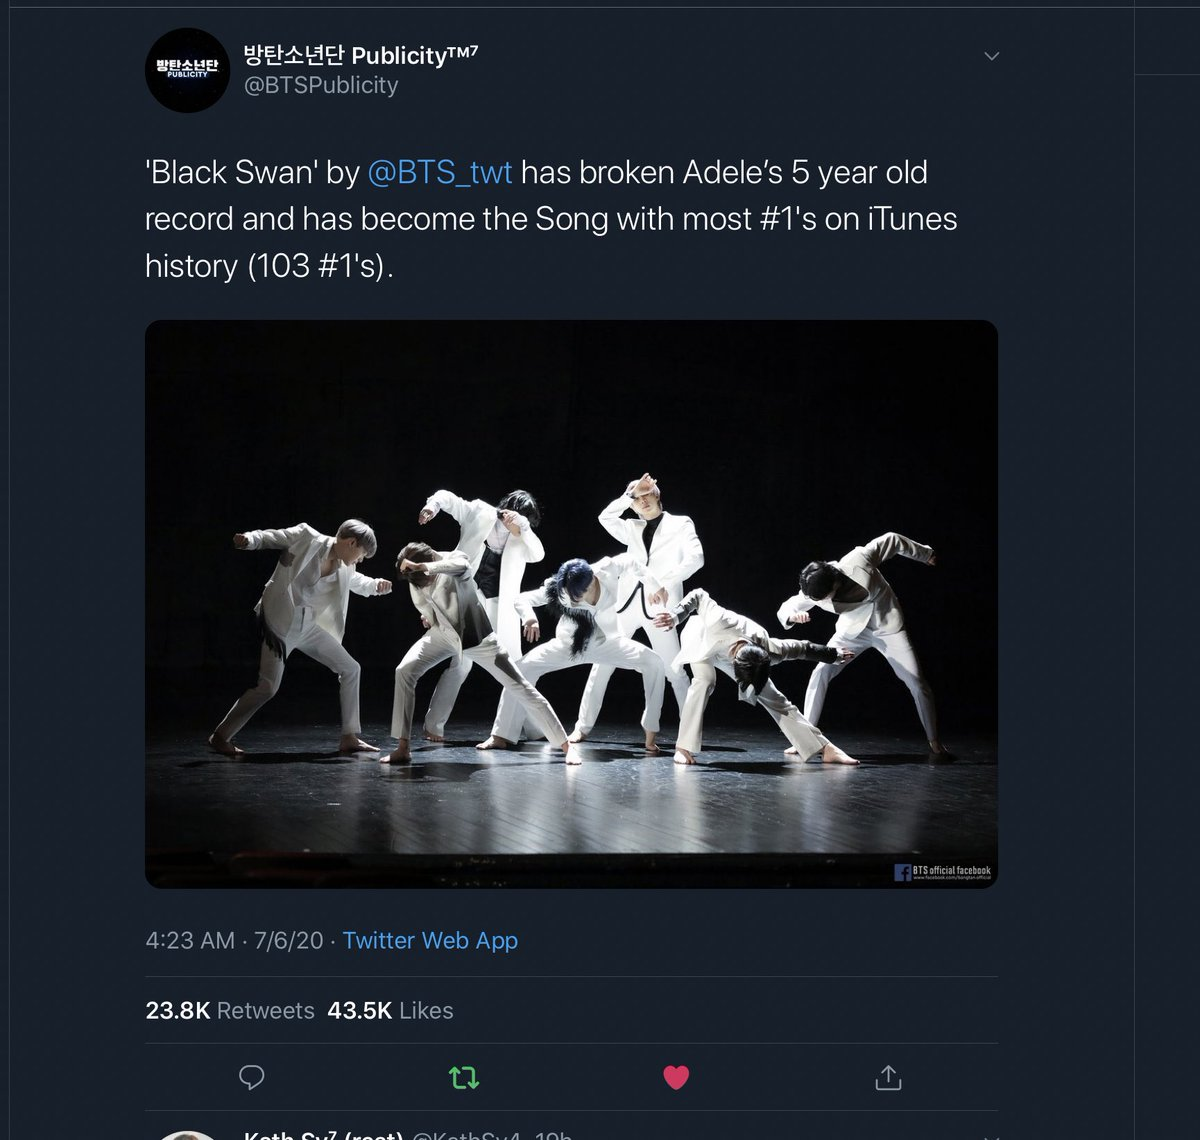 @billboard @charlieputh Anyways You forget writing about this.  Black Swan by @BTS_twt has broken Adele's 5 year old record and has become the Song with most #1's on iTunes history 103 #1's #BTS #BTSARMY https://t.co/s4njk7DHGZ